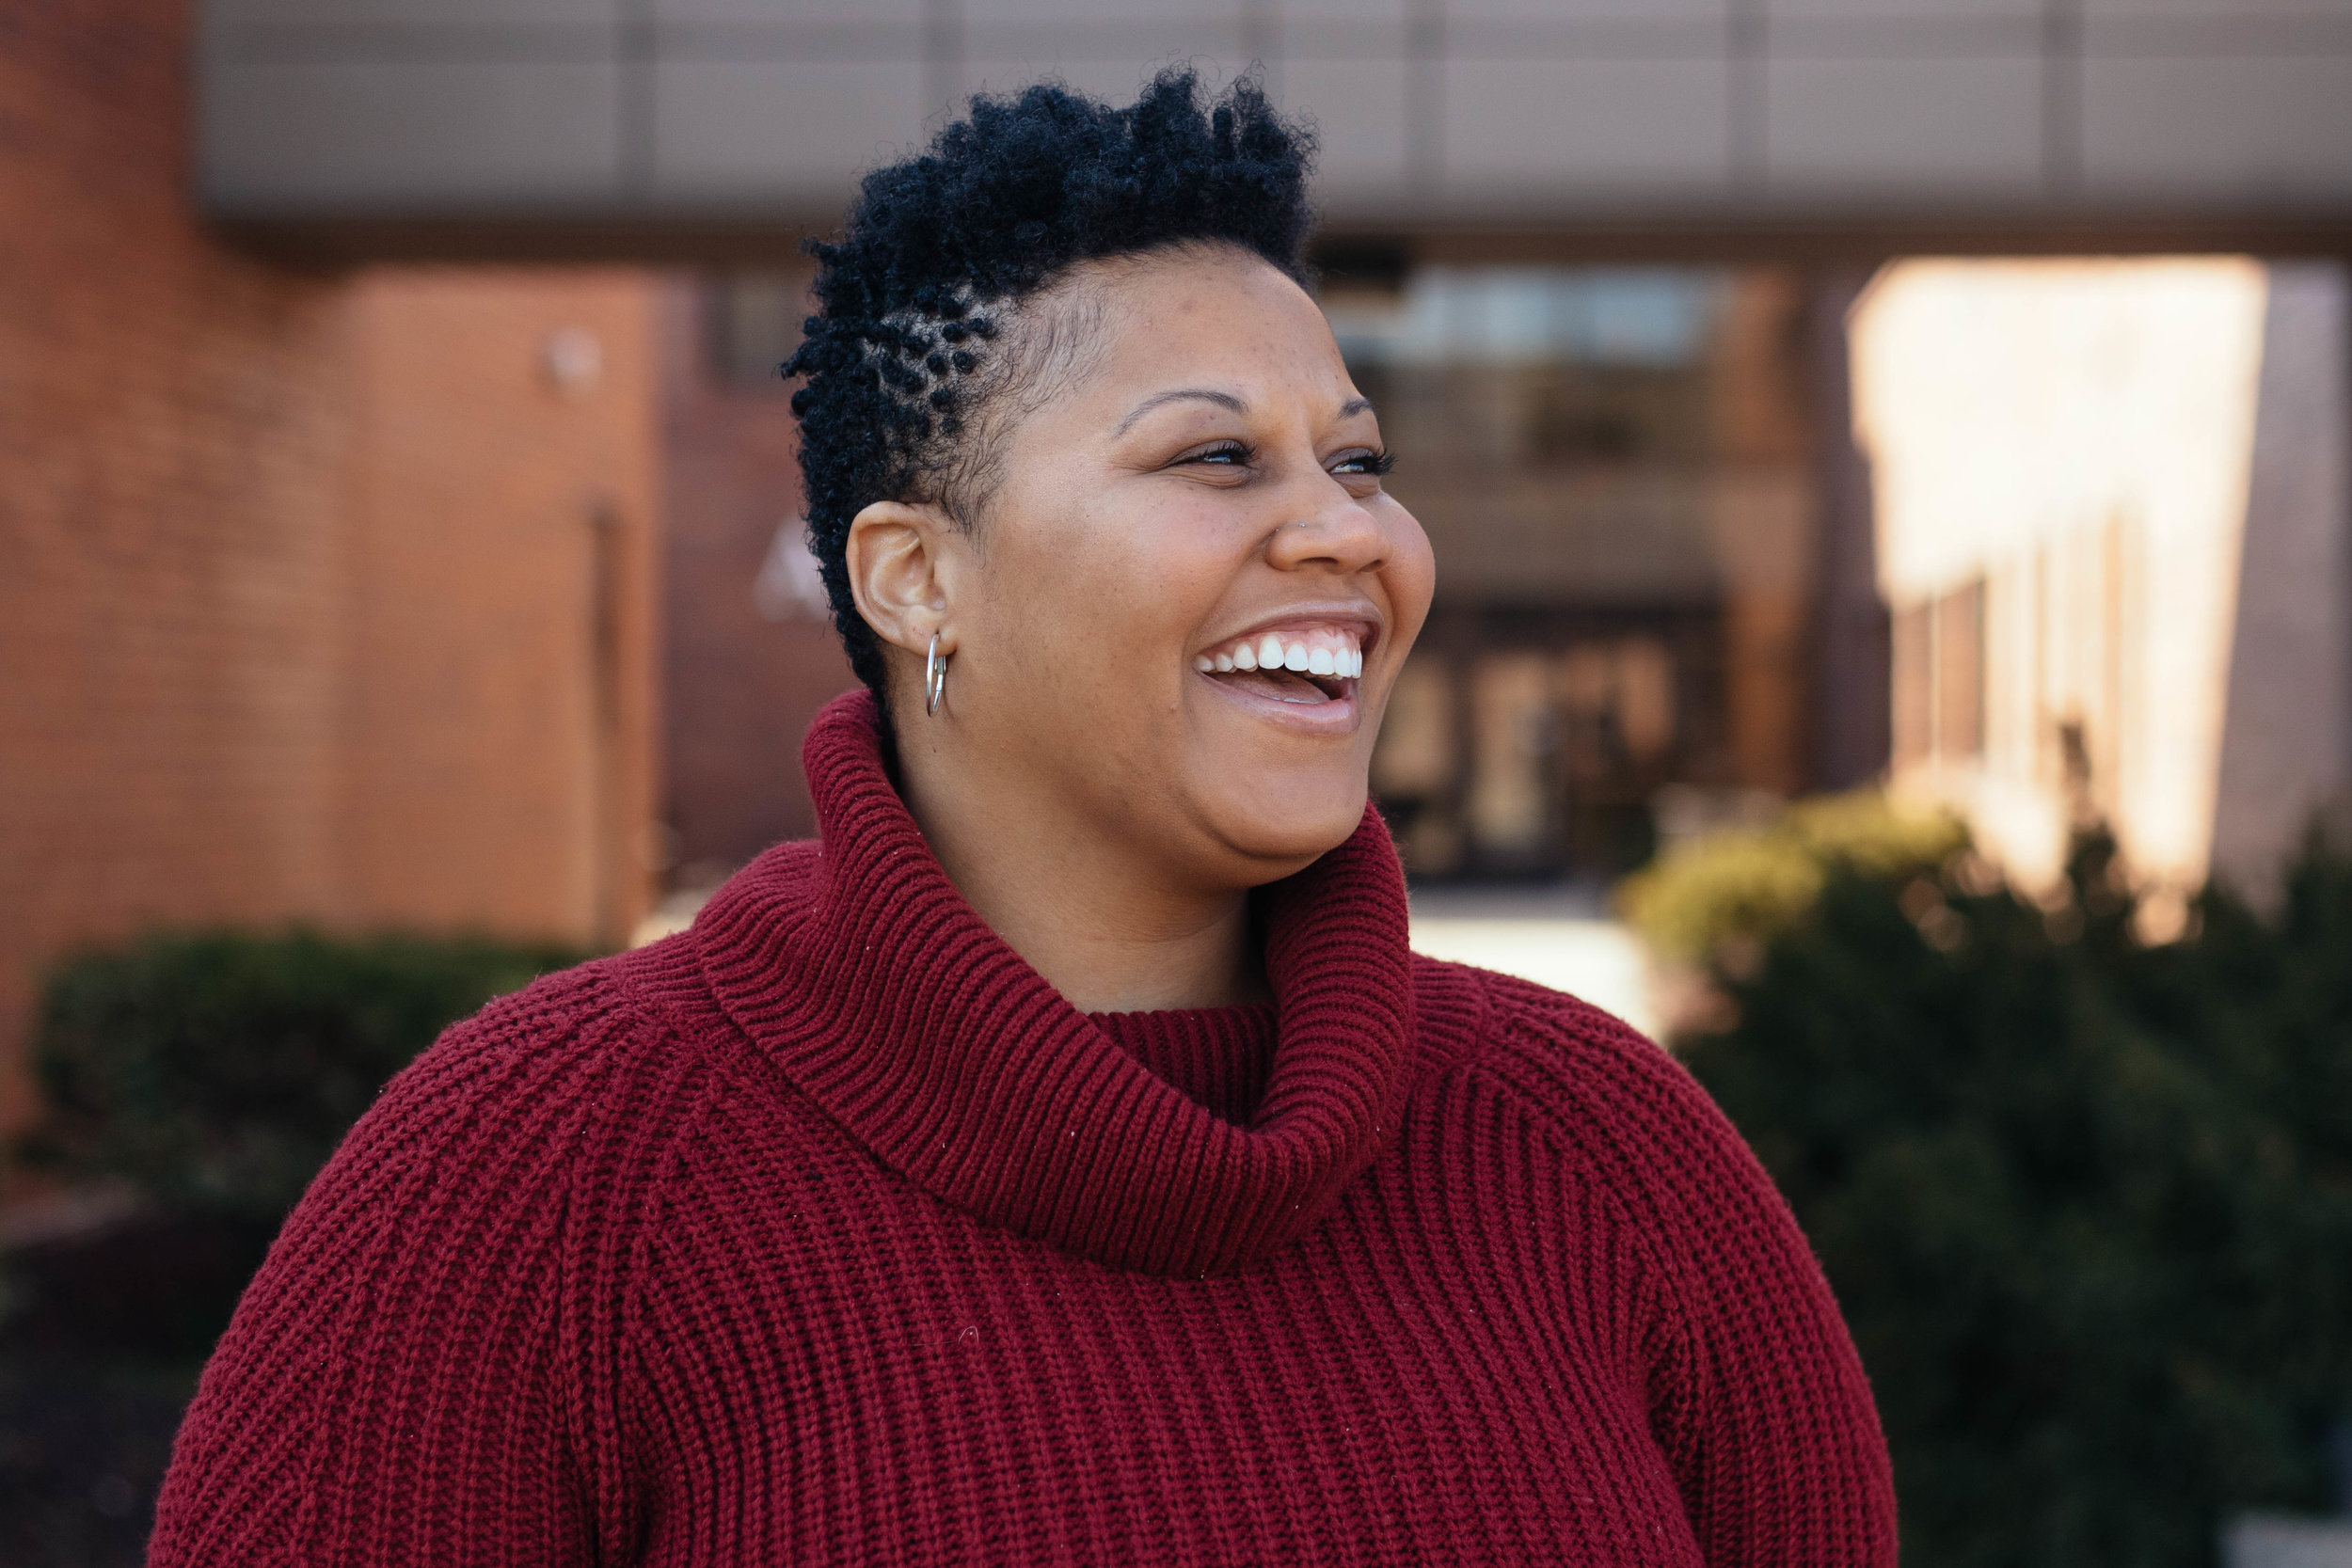 Jessica Fort is a power-builder in WEPOWER's East St. Louis Education Power-Building Academy, a seven-month community-based leadership and policy change program for residents of the area. Photo by Kristen Trudo.